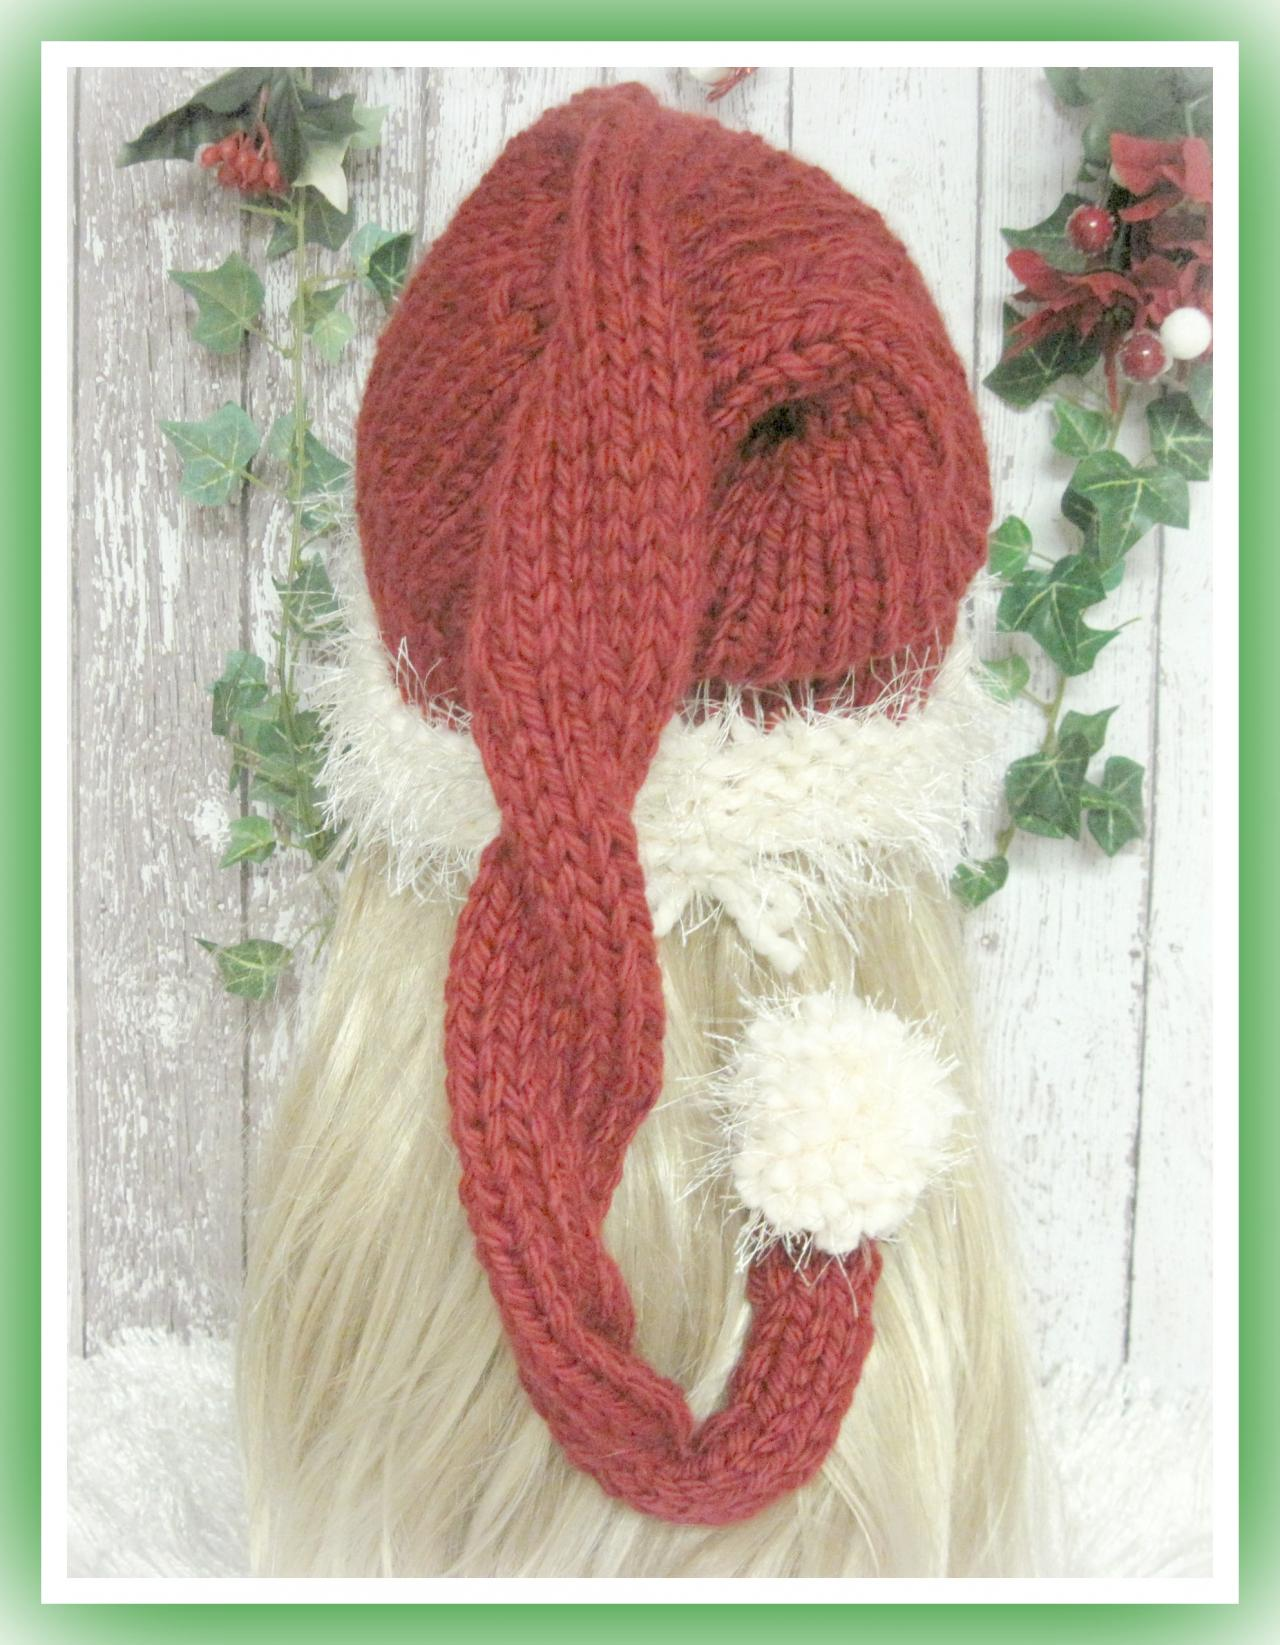 Ho ho santa hat knitting pattern sized preemie baby child and ho ho santa hat knitting pattern sized preemie baby child and adult bankloansurffo Images